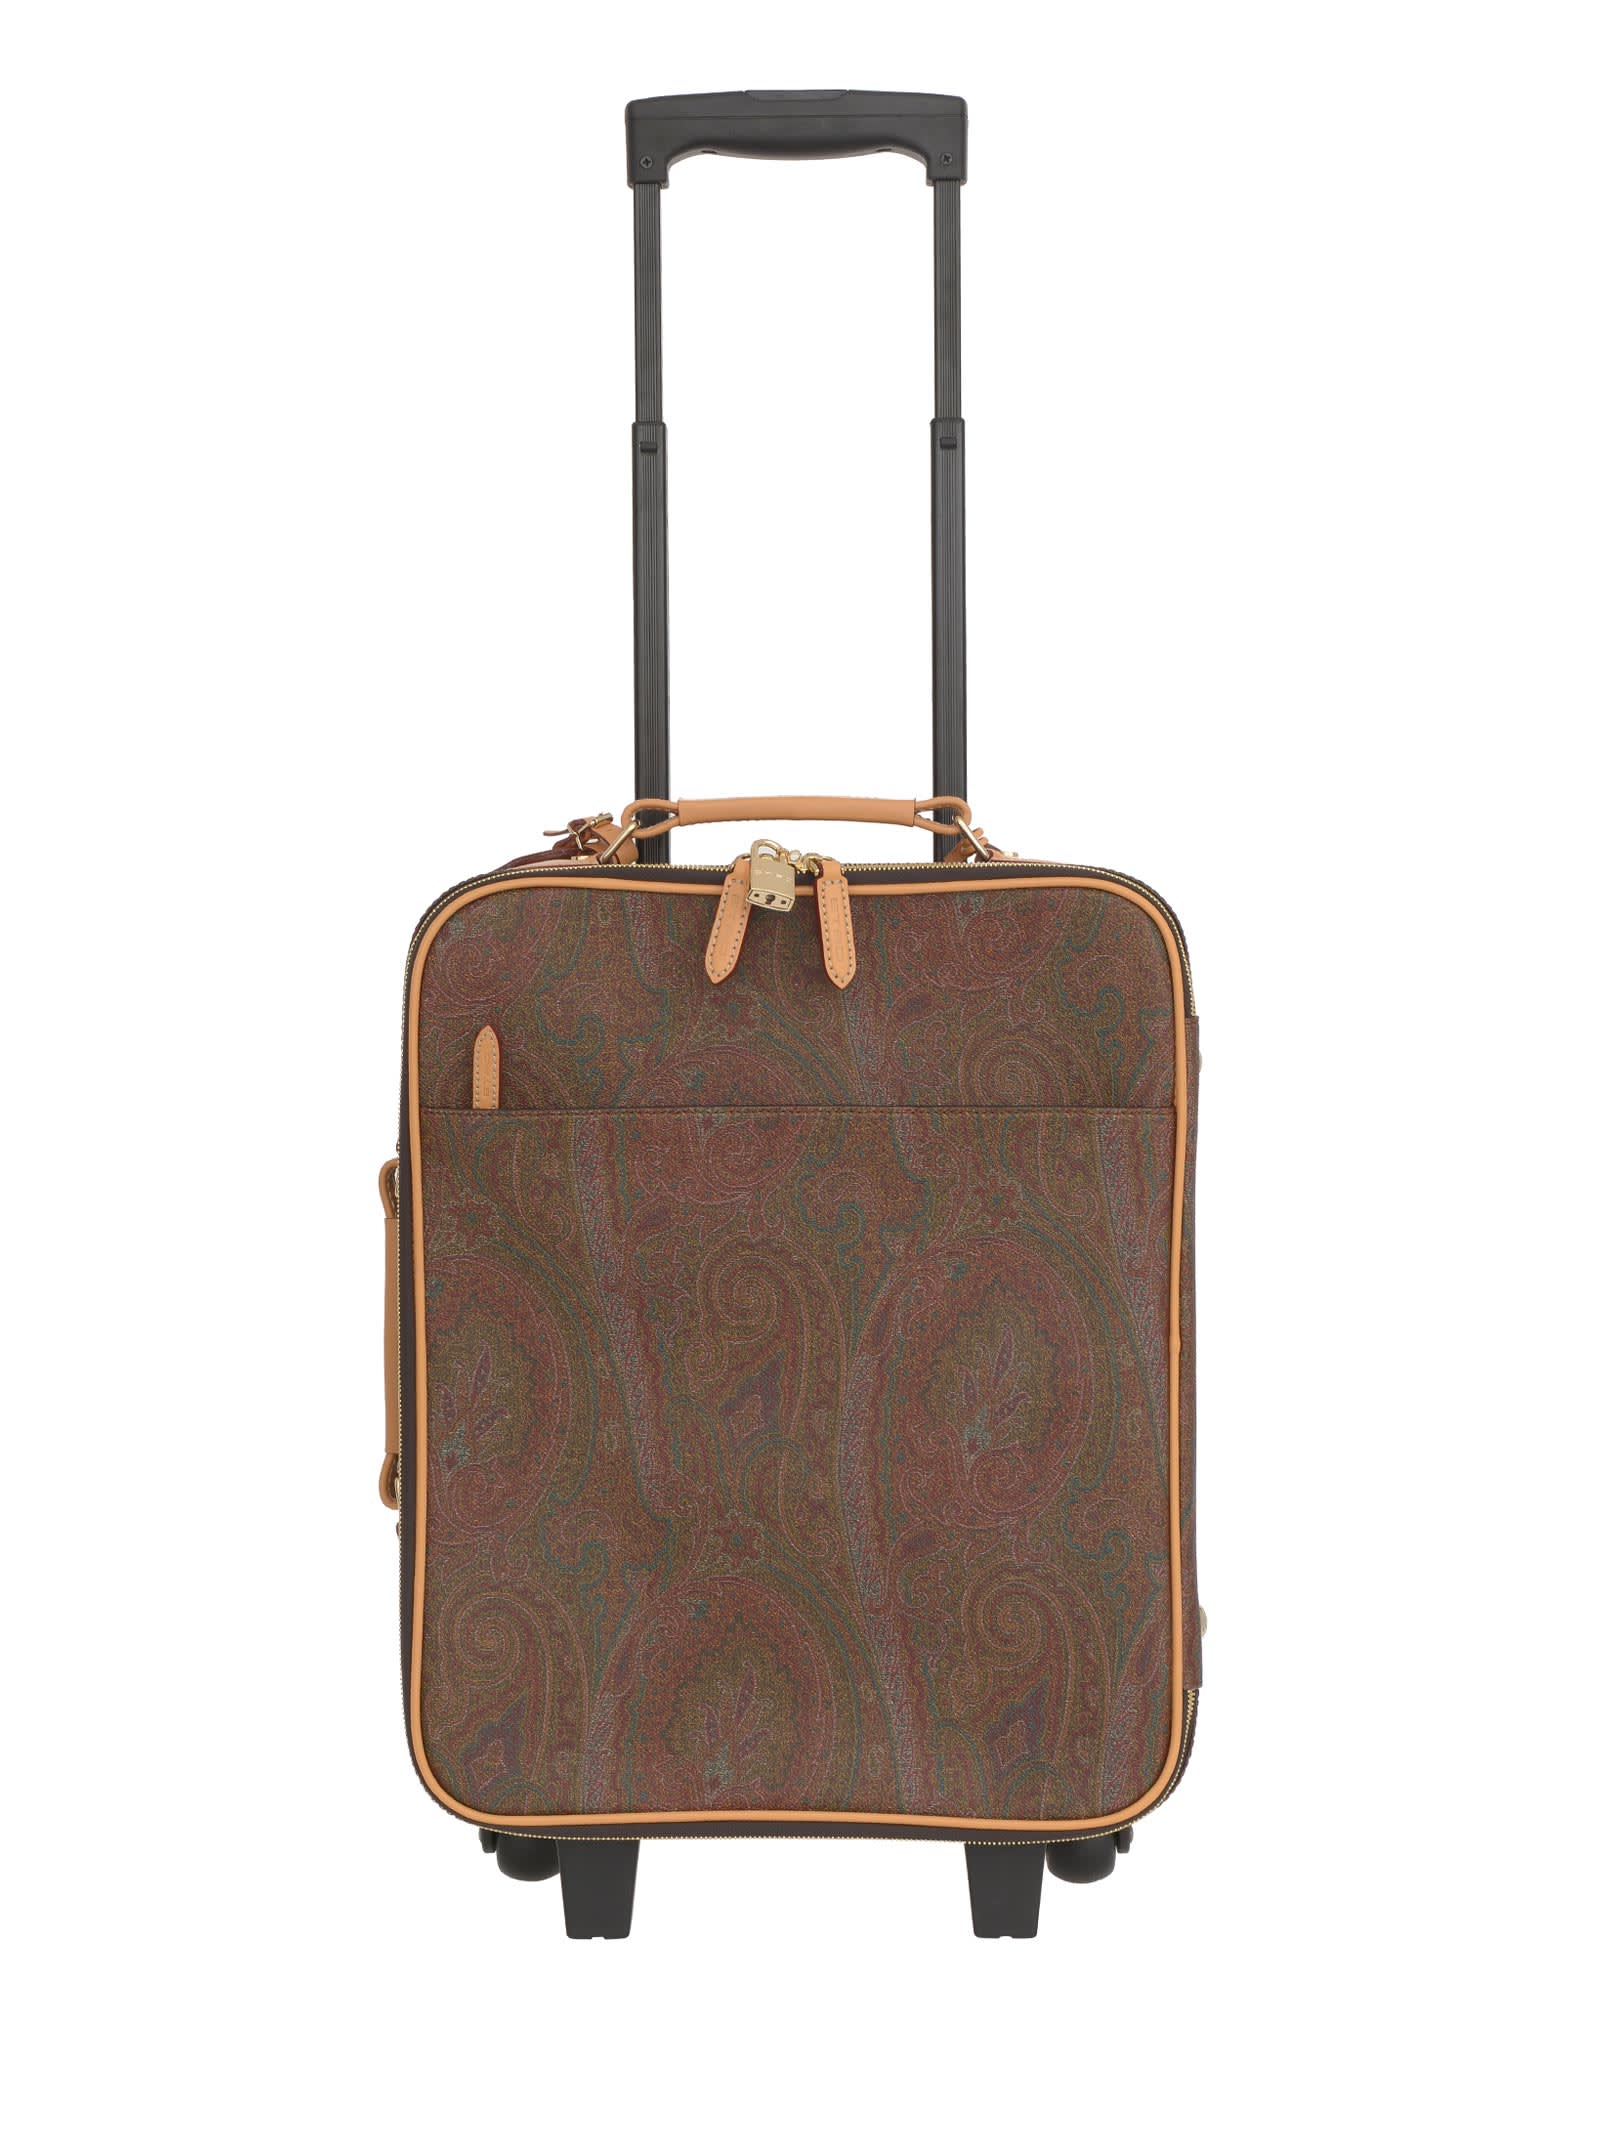 Etro designs the trolley in coated cotton with multicolor paisley print. Practical details, such as the two wheels and the telescopic cane, are added to the glamorous ones, like the leather handles and finishes. The lined interior, with a zippered pocket, completes the travel bag that follows you in far lands and exotic explorations. Double-slider zip closure and padlock External and internal zippered pockets Telescopic cane, two wheels Side and top handle, leather tag Paisley print, burgundy ca